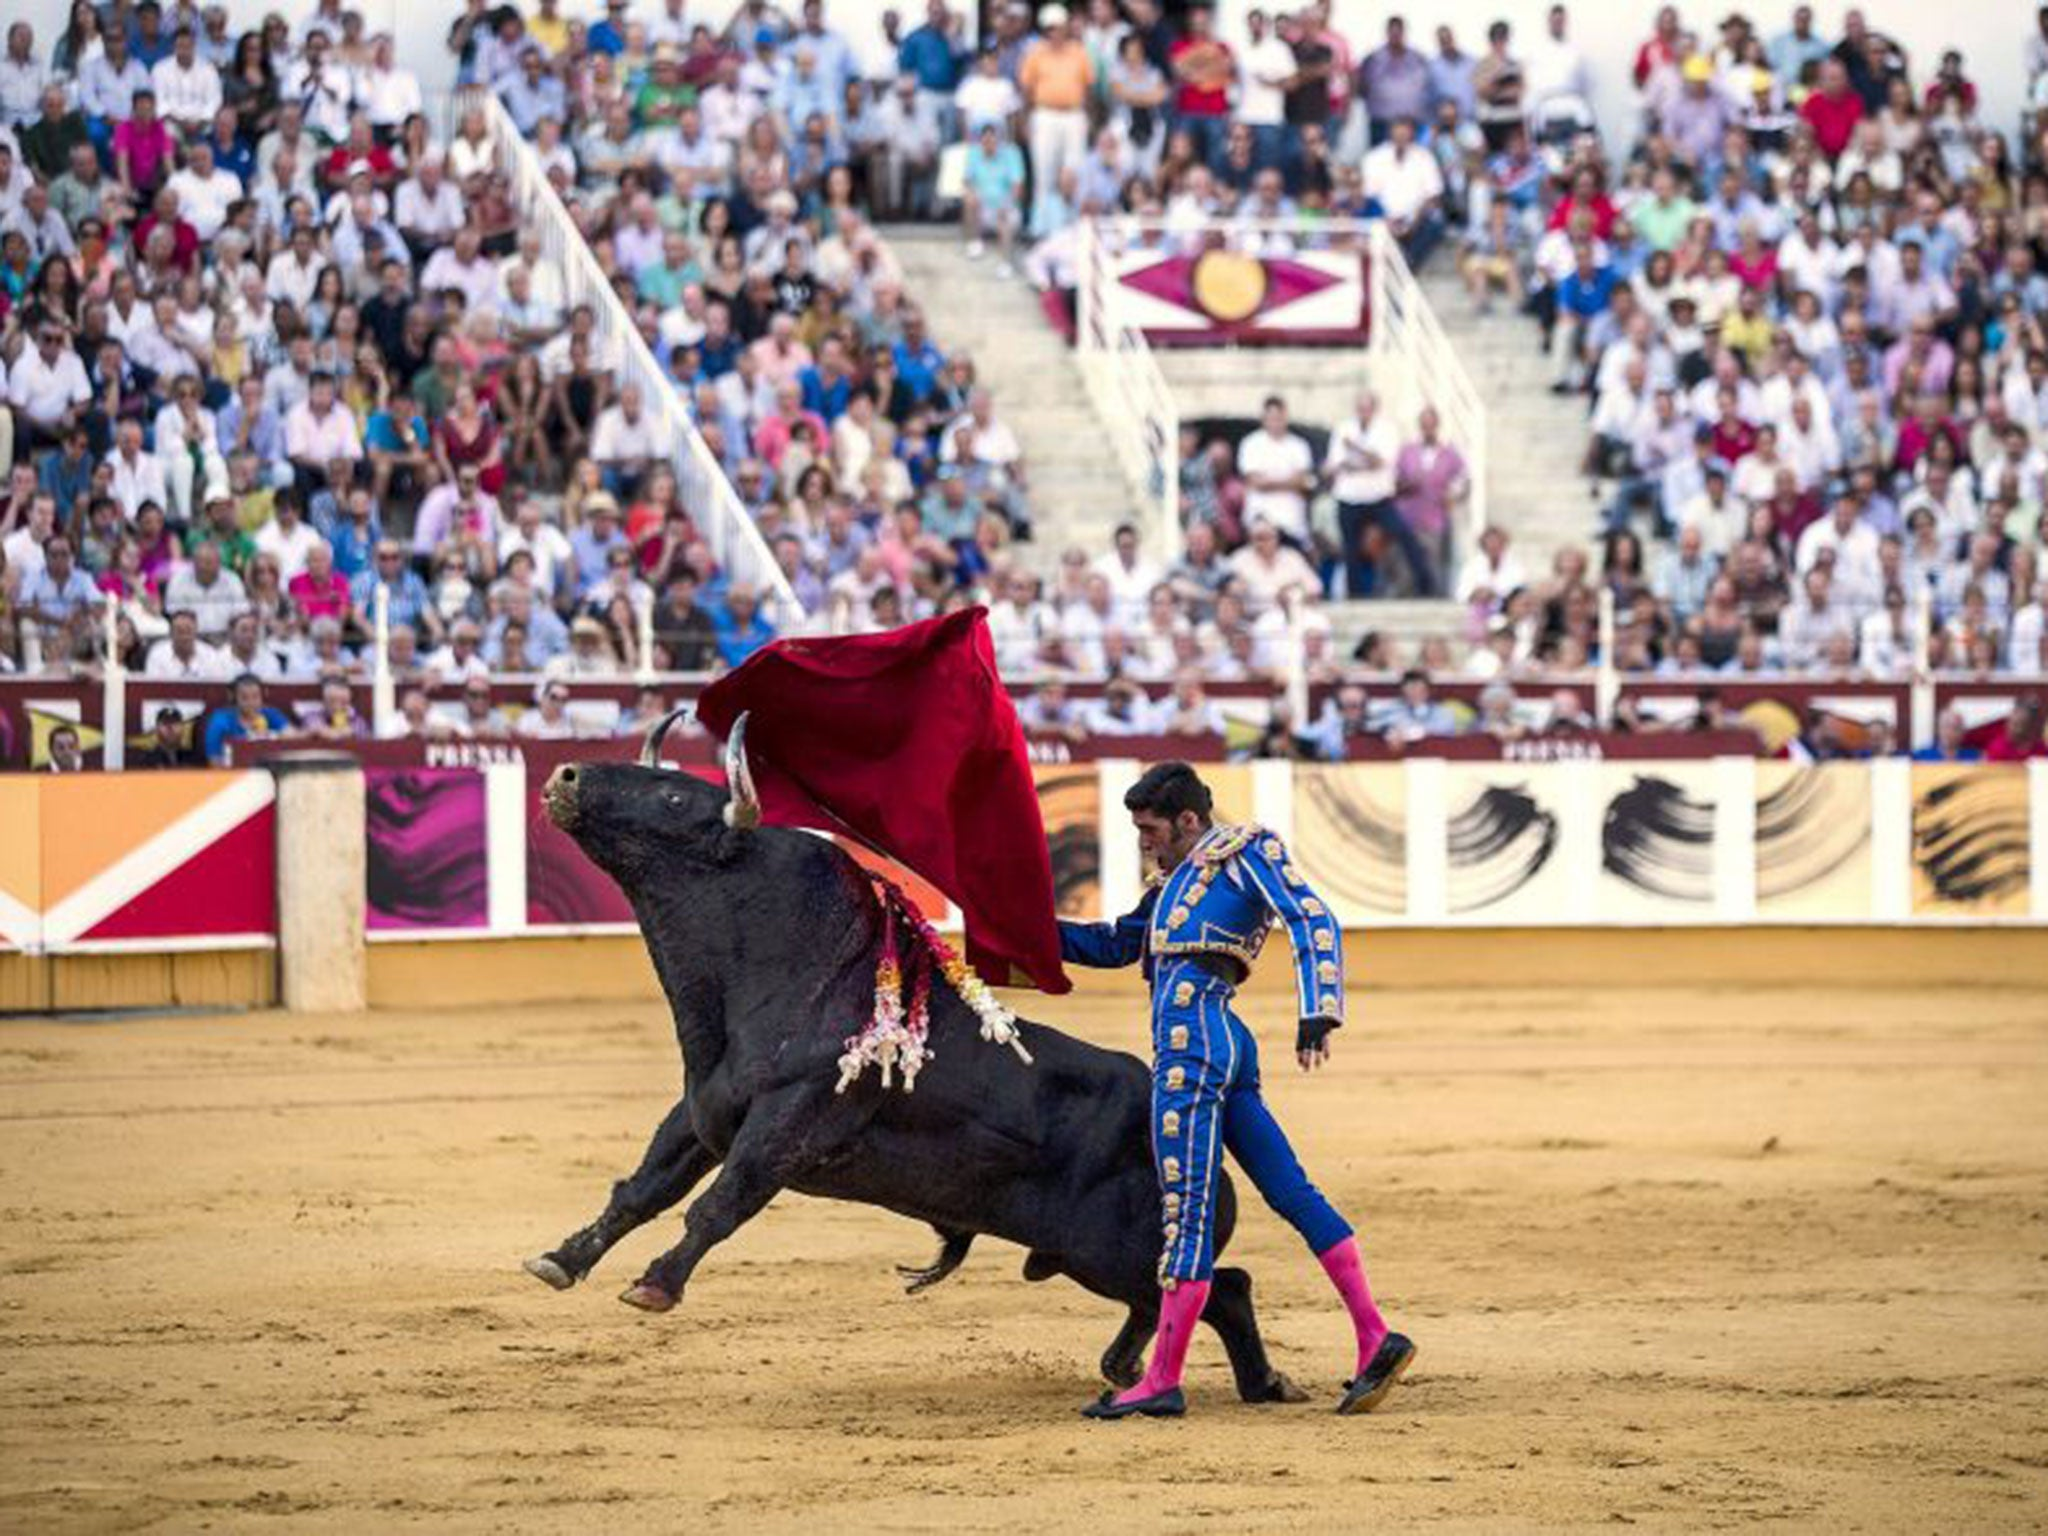 Thousands demand bullfighting ban in Spain protest march | The Independentindependent_brand_ident_LOGOUntitled